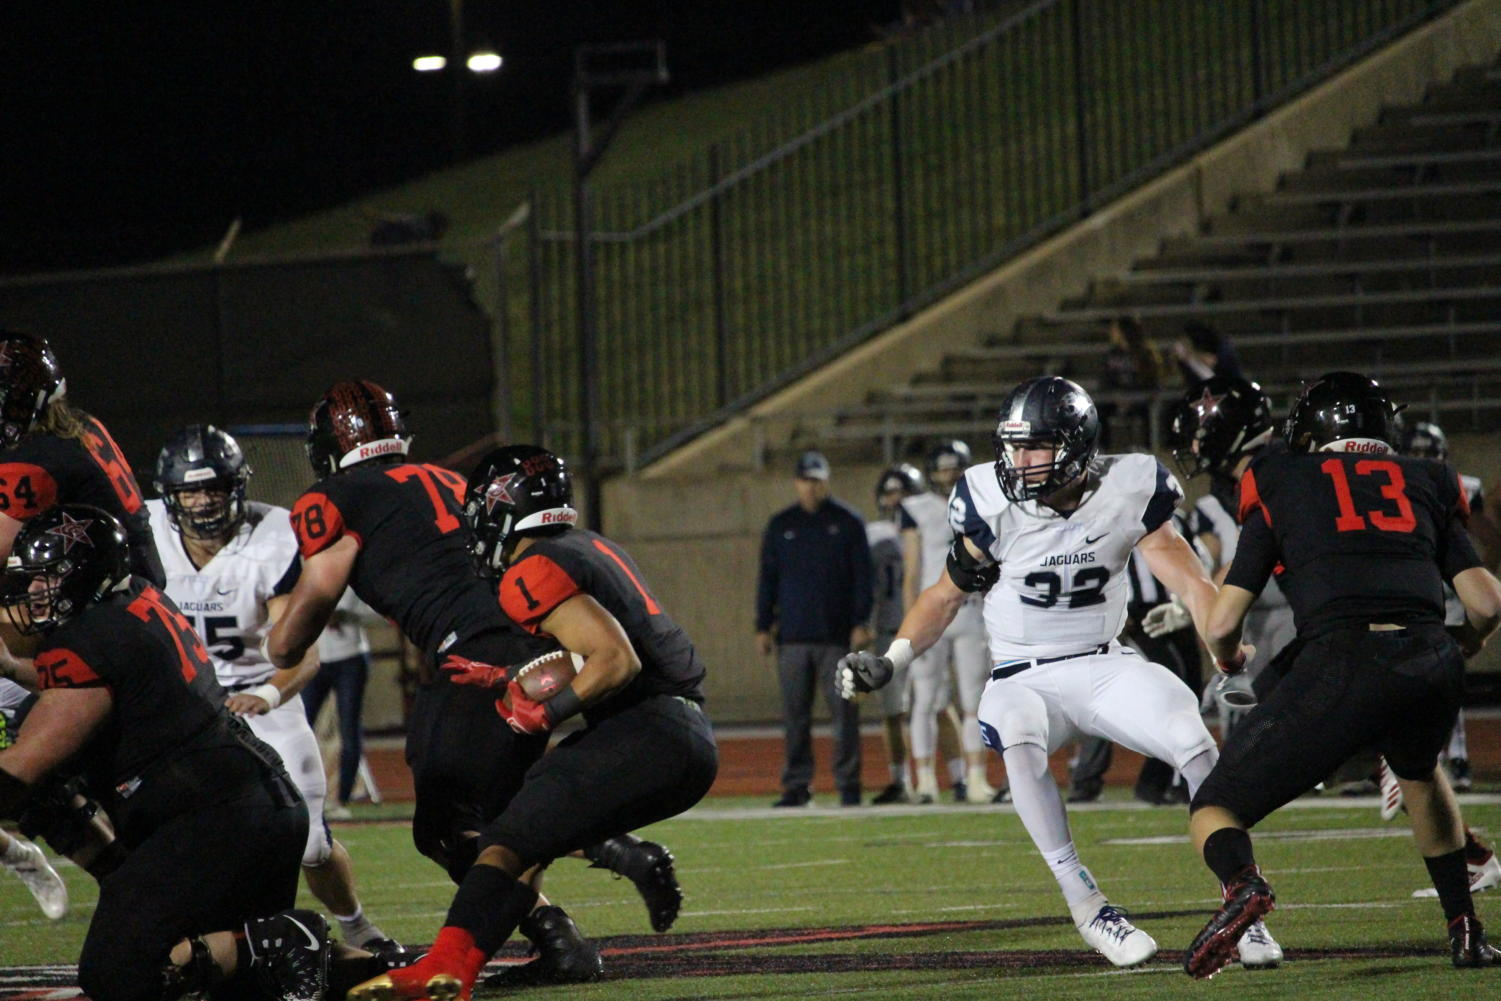 Coppell senior De Heath carries the ball to score a touchdown on Friday Nov. 2 at Buddy Echols Field. The Cowboys lost to Flower Mound, 31-17.